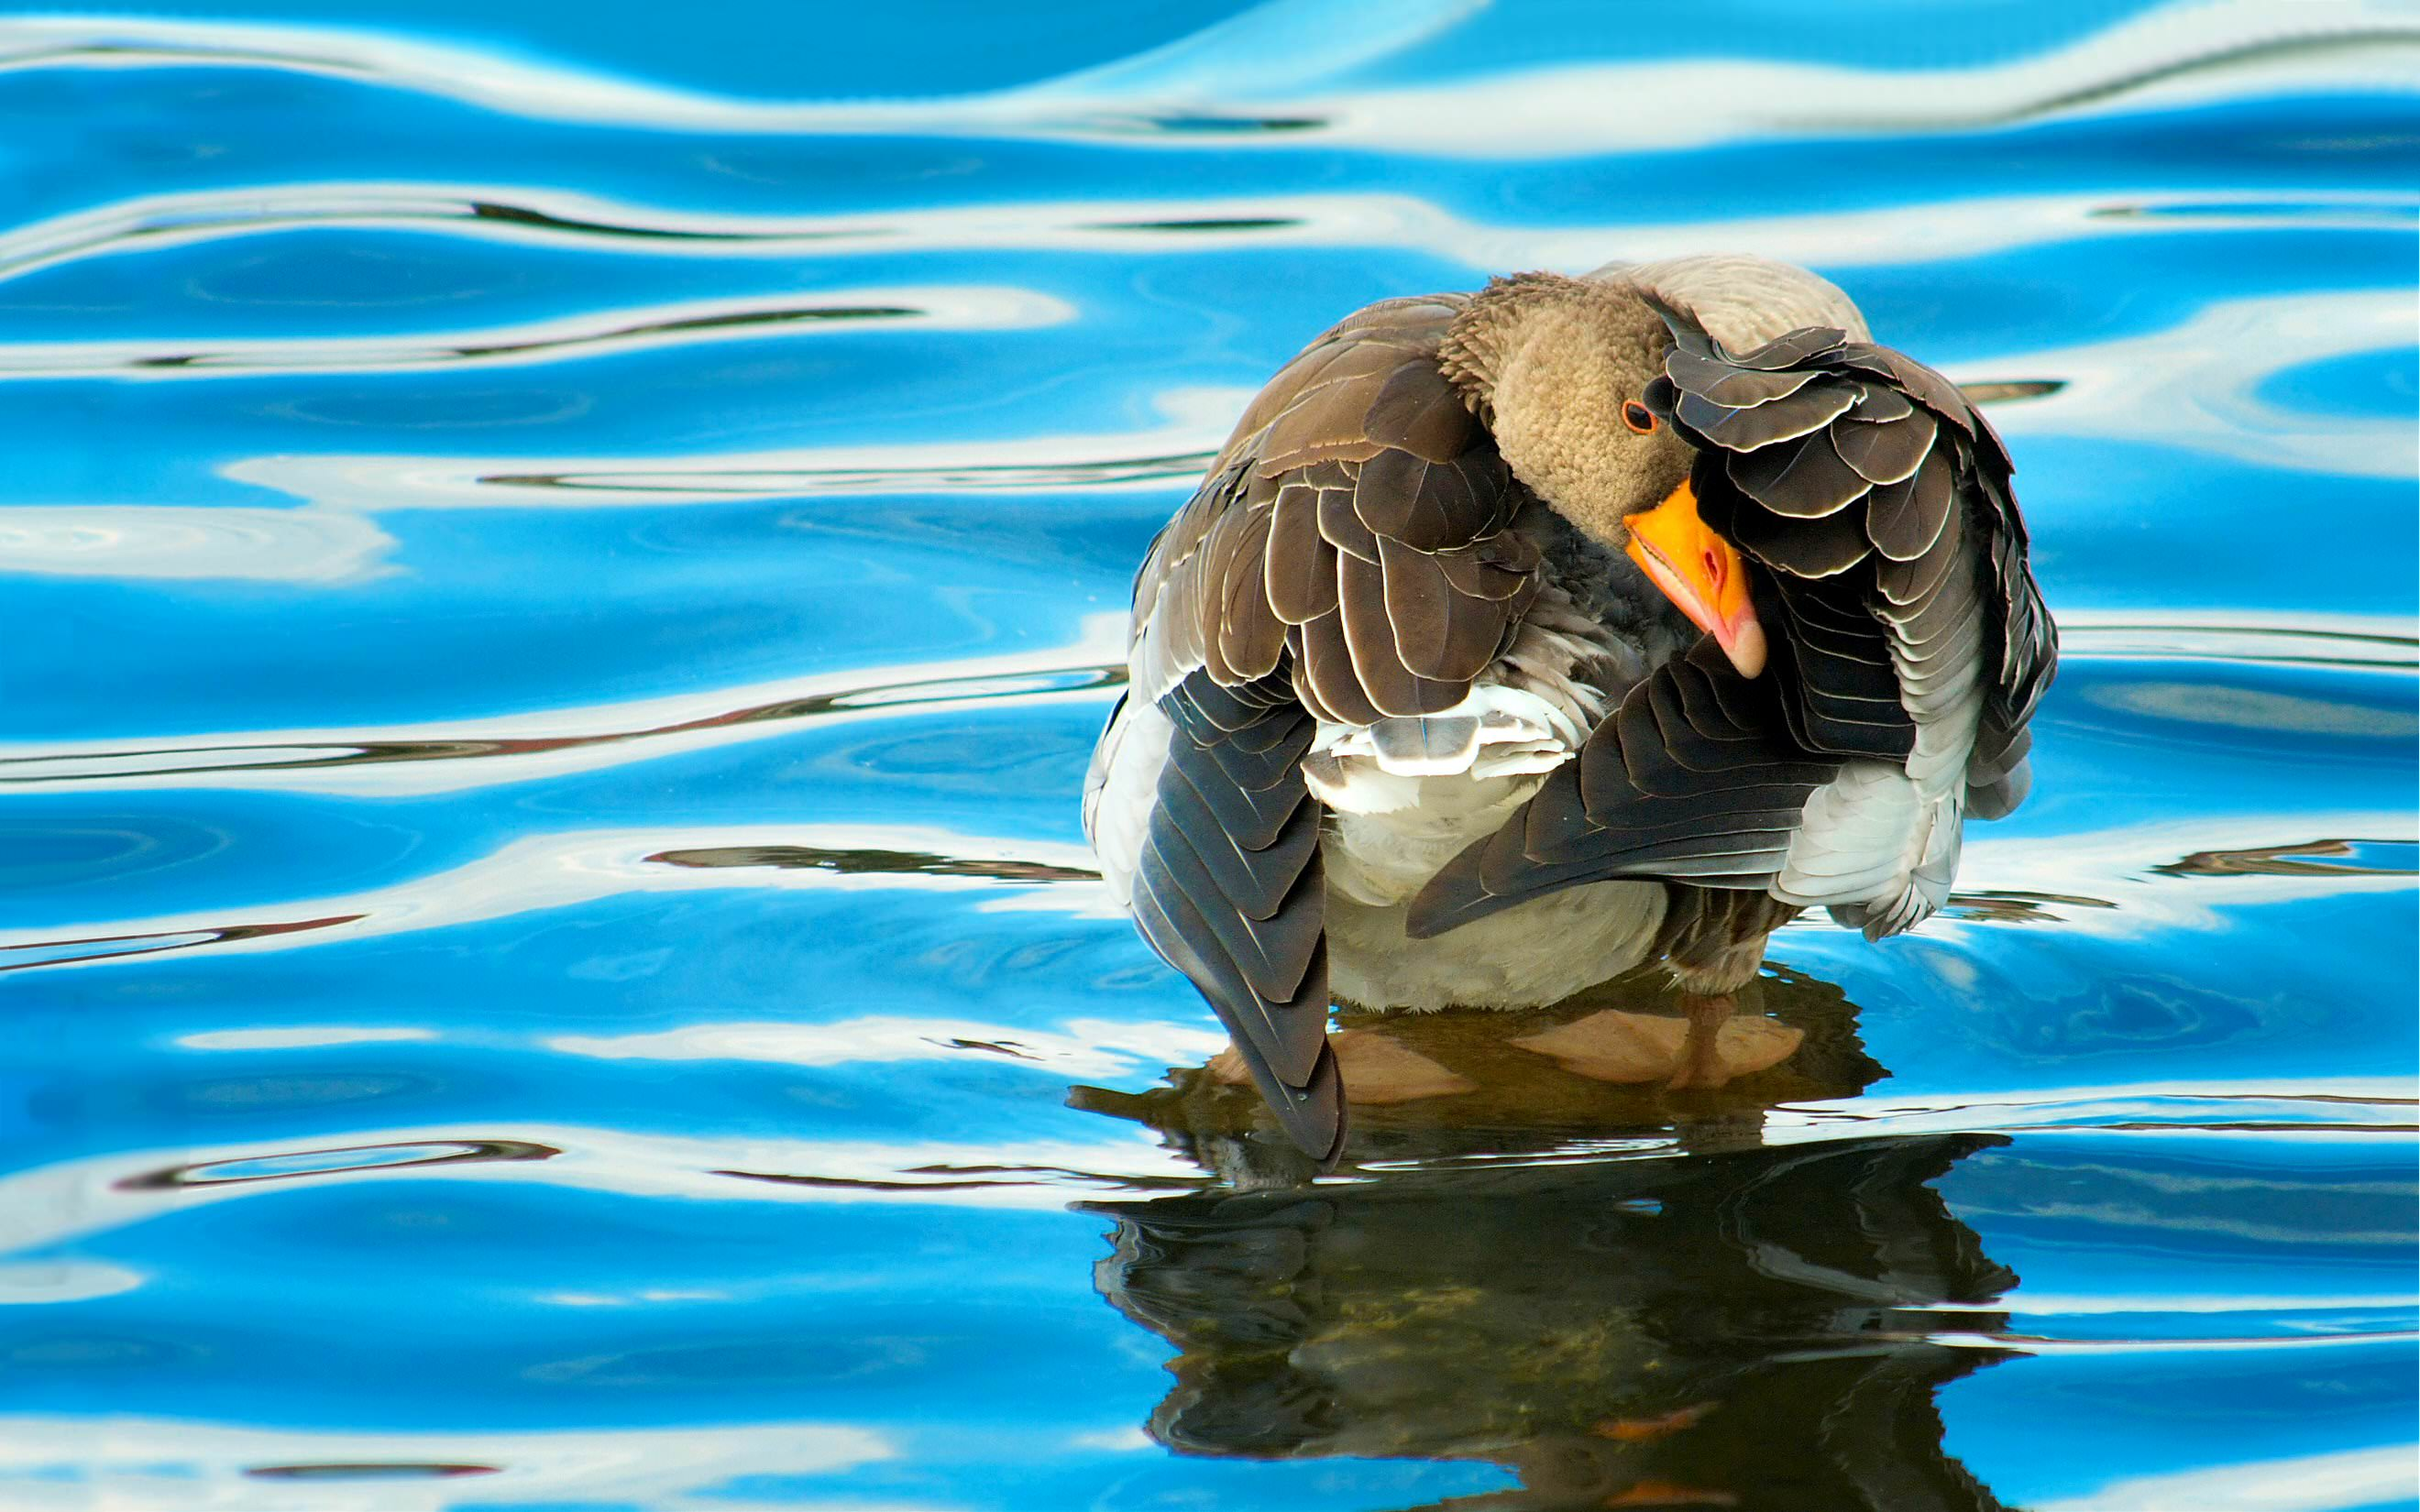 Duck Goose with Reflection of Blue Water Image